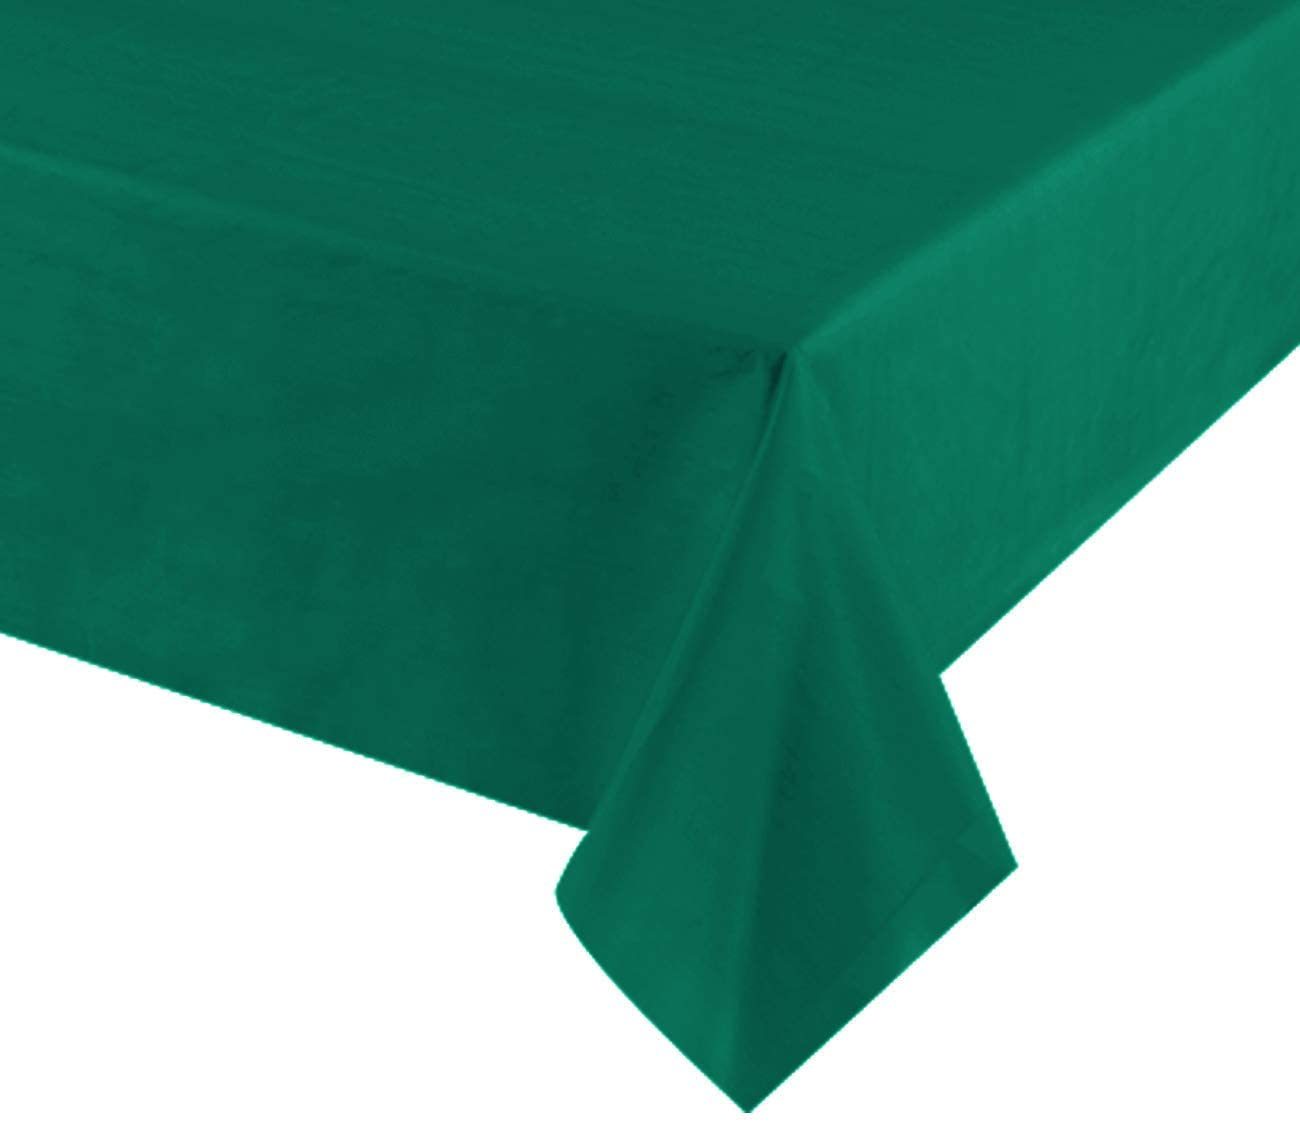 Plastic Tablecloths for Rectangle Tables, 12 Pack – Heavy Duty Party Table Cloths Disposable, Rectangular Table Covers, 54 x 108, Color-(Hunter Green)